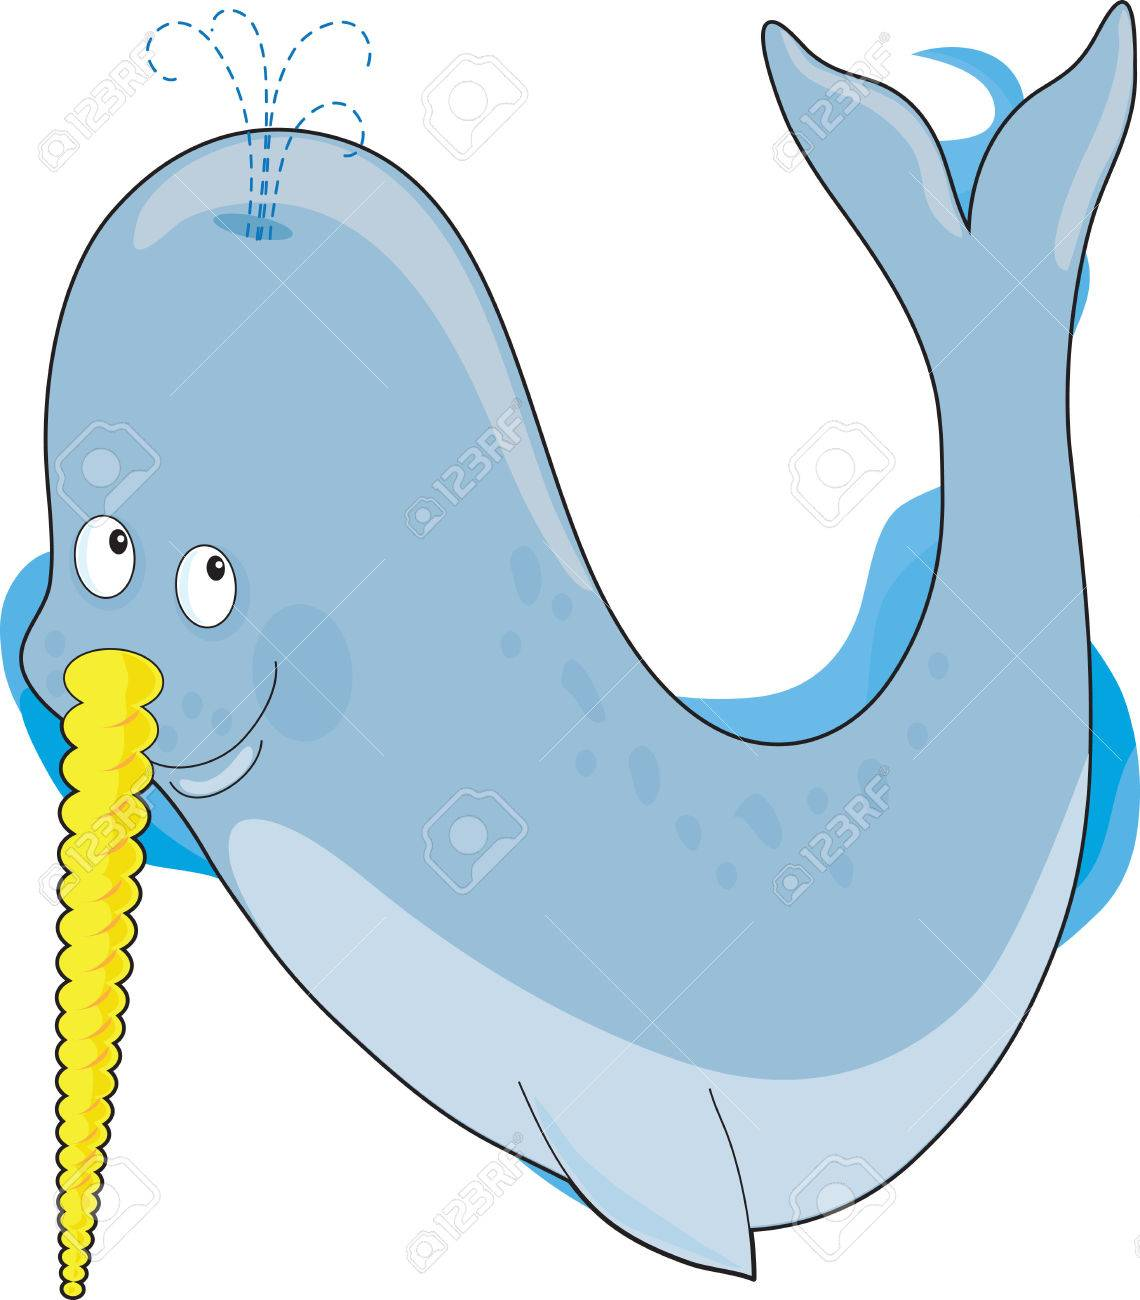 a narwhal whale in the shape of a the letter n royalty free